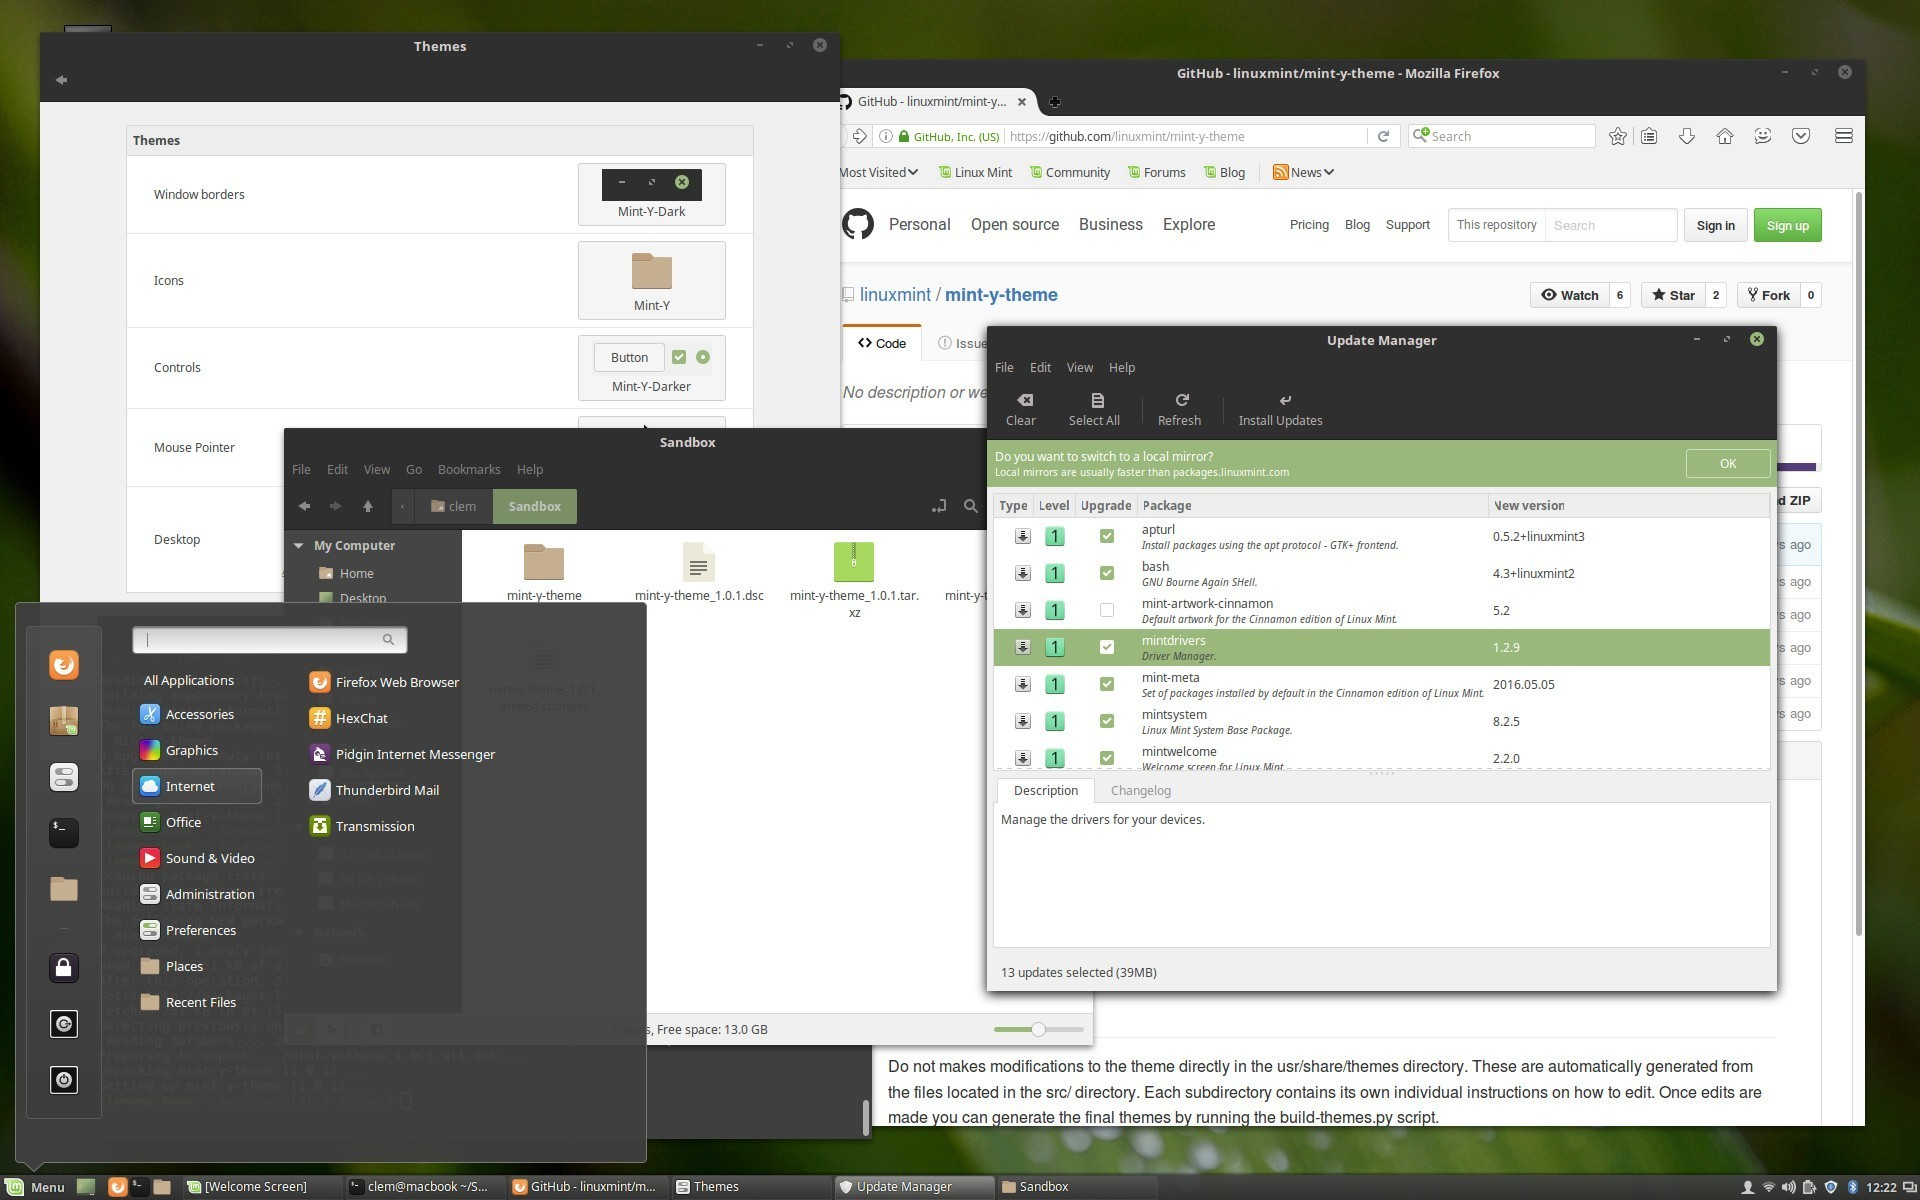 linux-mint-18-1-to-ship-with-mate-1-16-and-new-mint-y-theme-by-default-503787-2